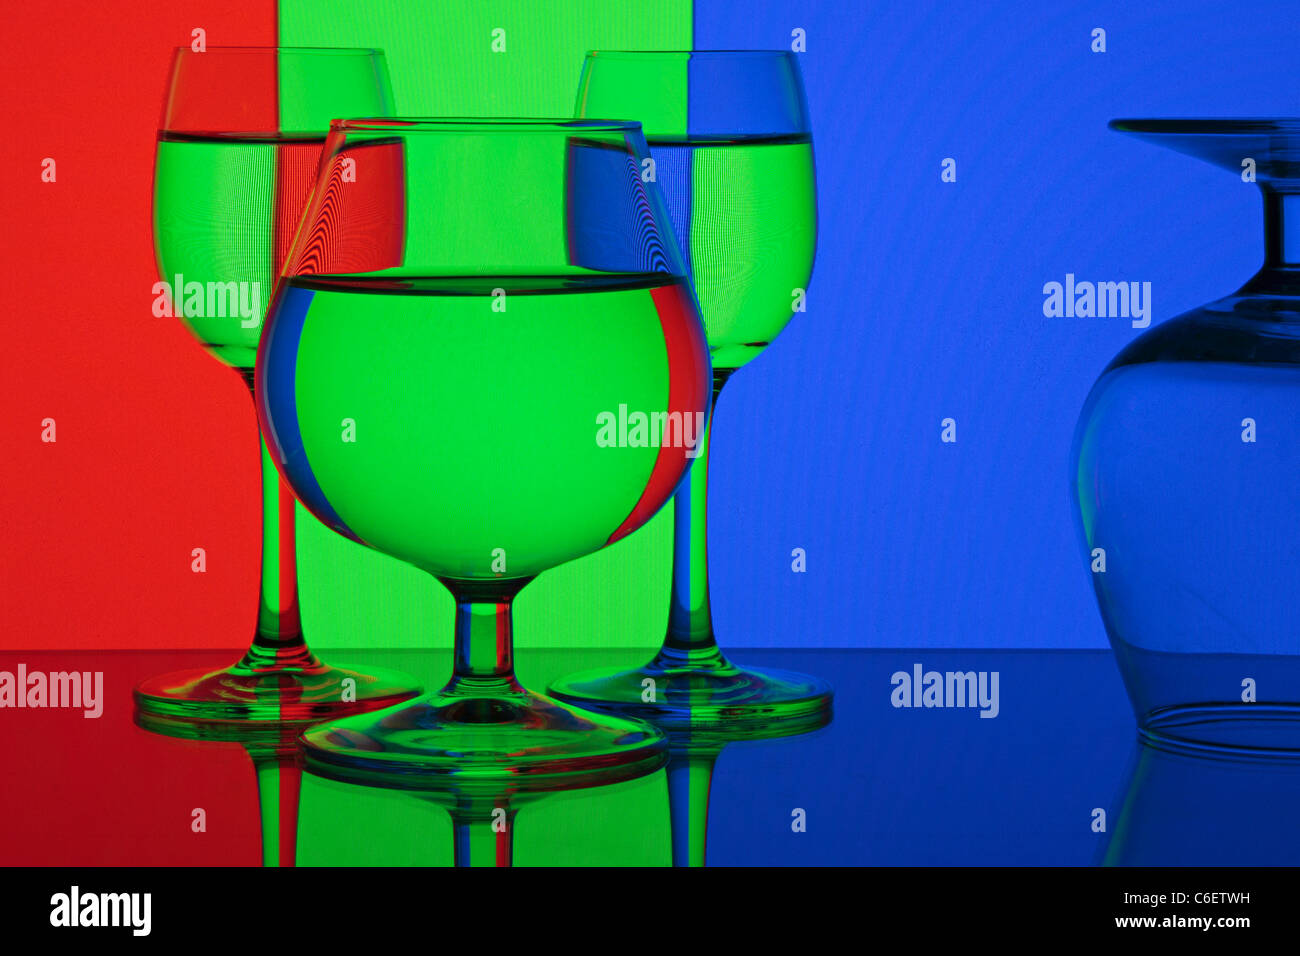 Abstraction - red, green, blue. Glasses on colorful background. Stock Photo